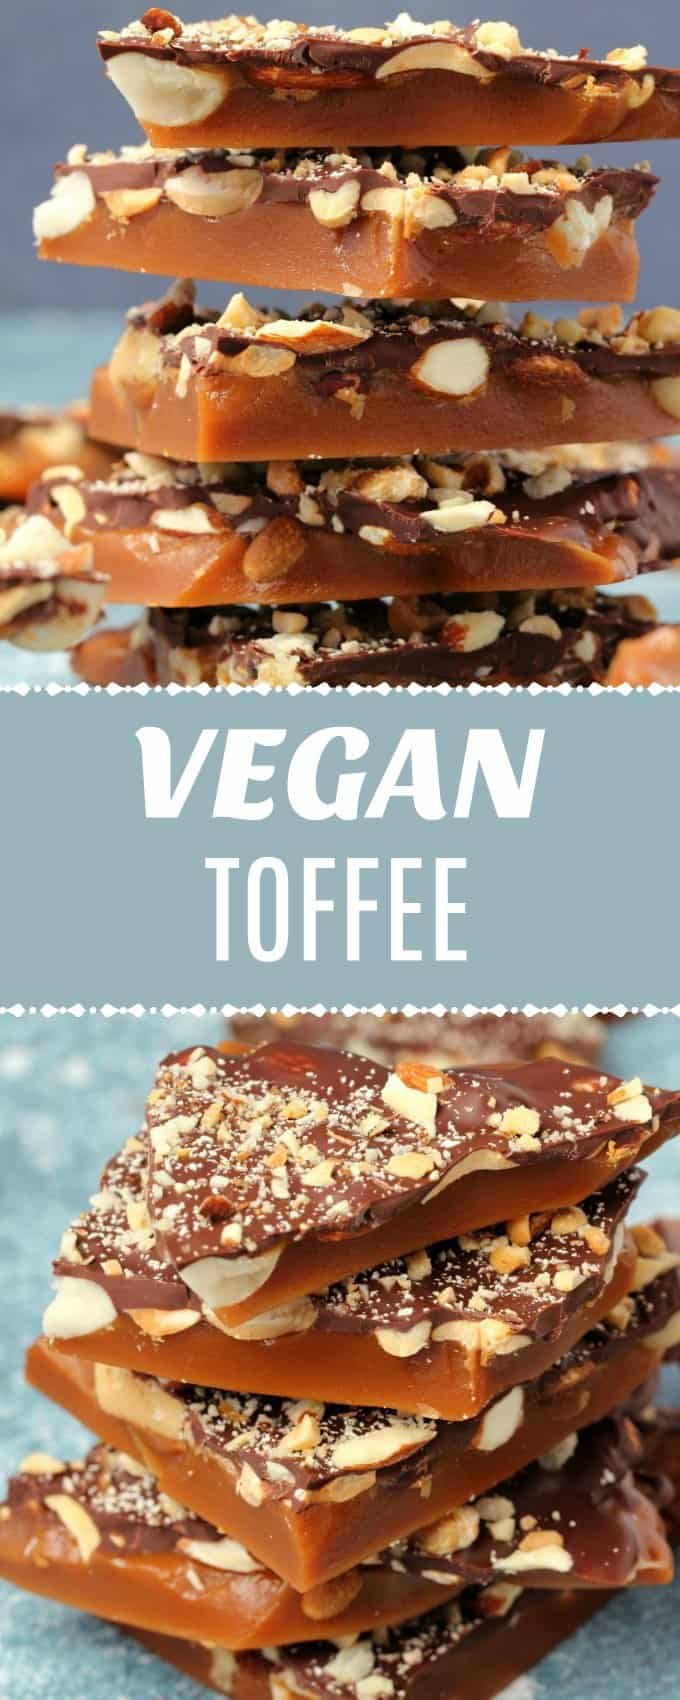 Creamy and buttery vegan toffee topped with salted nuts and vegan dark chocolate. This sweet and salty treat is totally over-the-top decadent and perfect for the holidays.| lovingitvegan.com